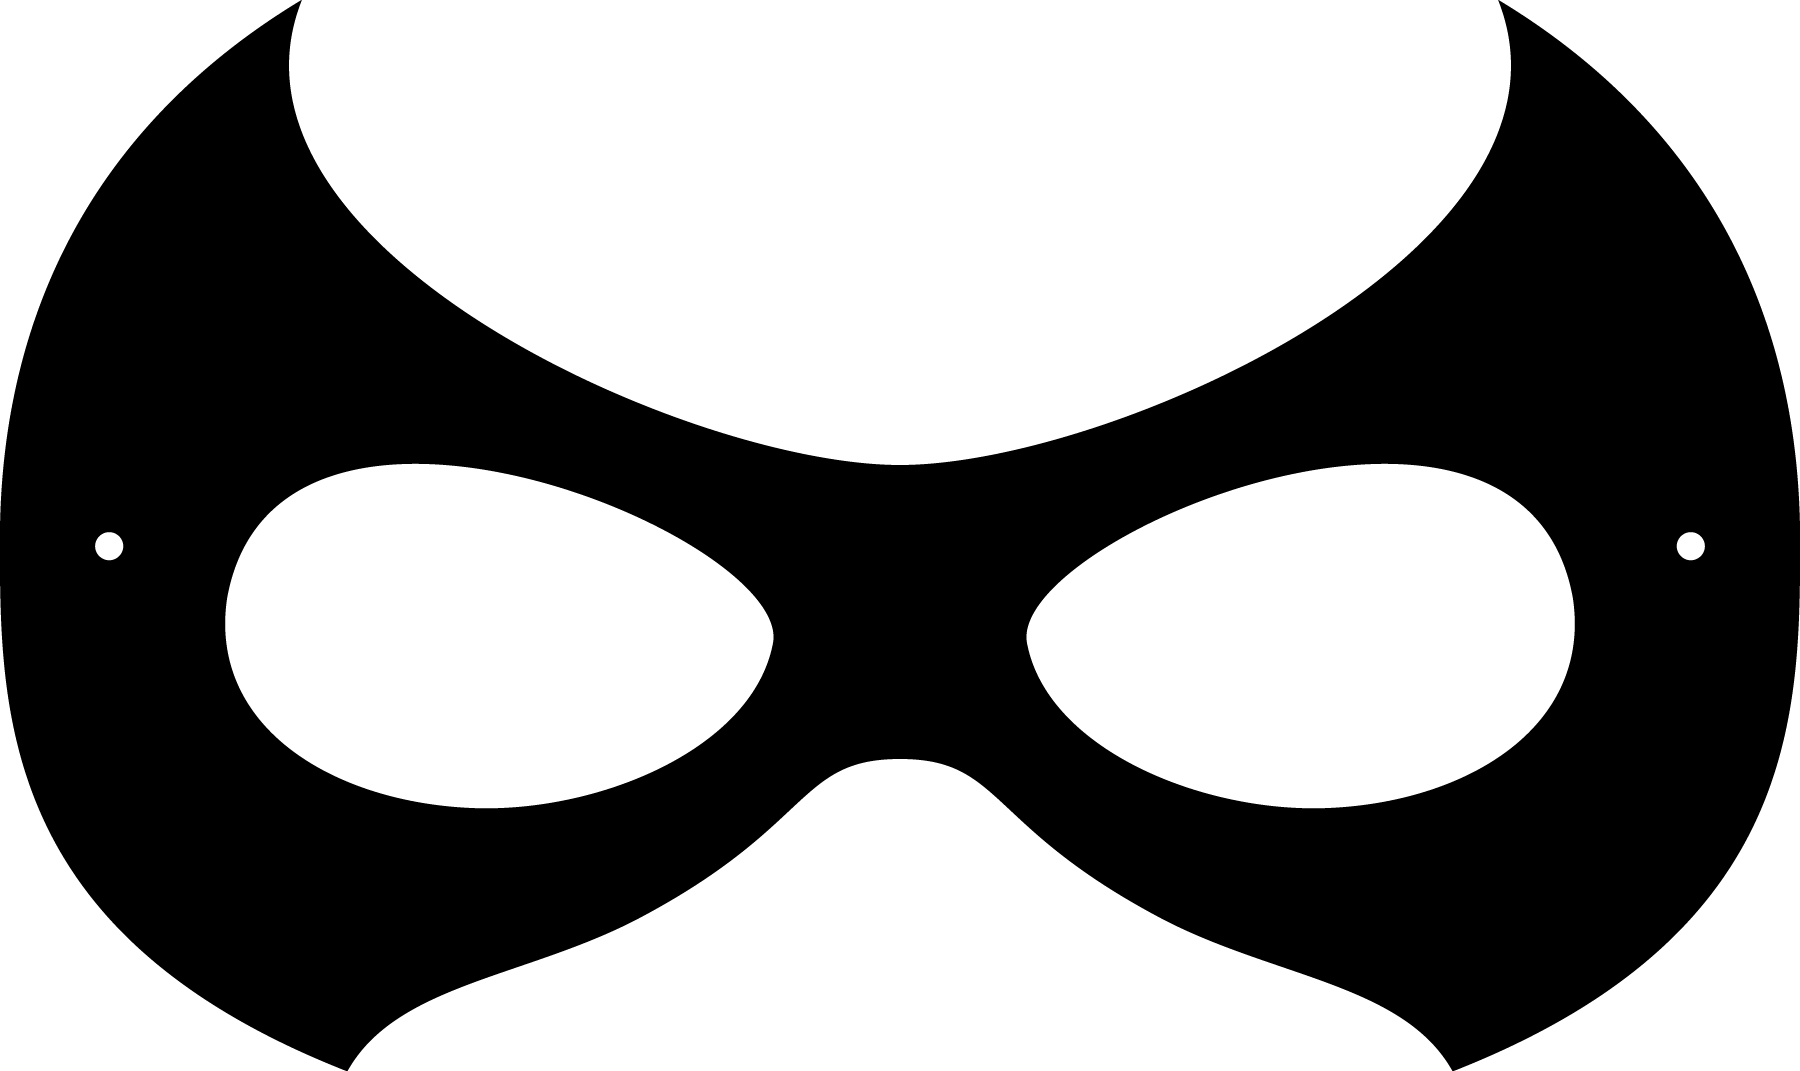 Clipart pencil template. Incredibles mask the robin